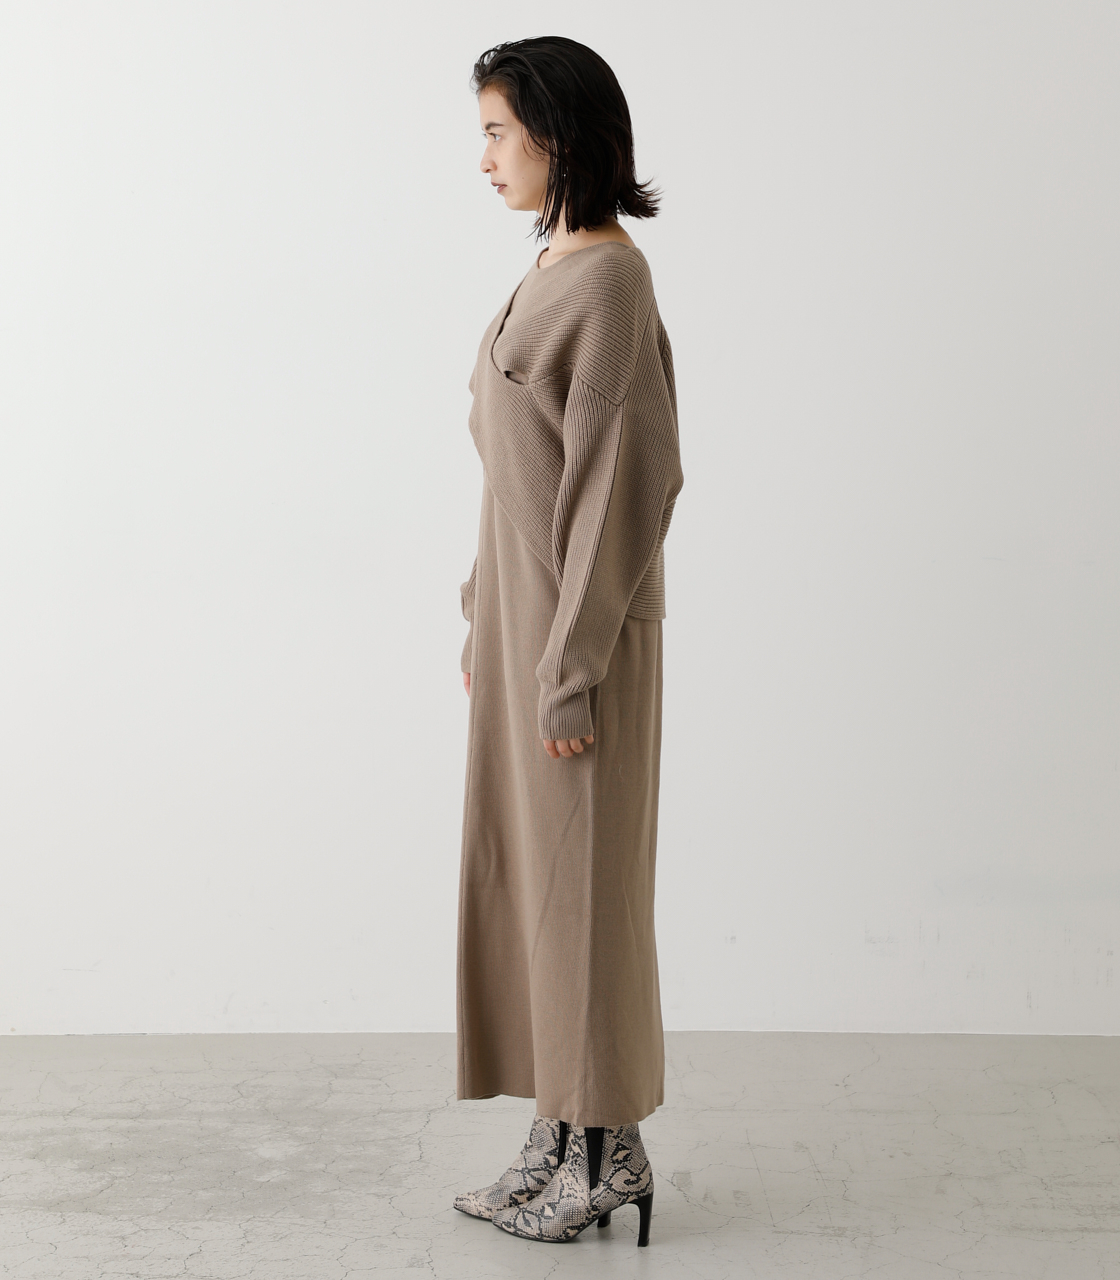 TWIST LAYERED ONE-PIECE/ツイストレイヤードワンピース 詳細画像 BEG 6